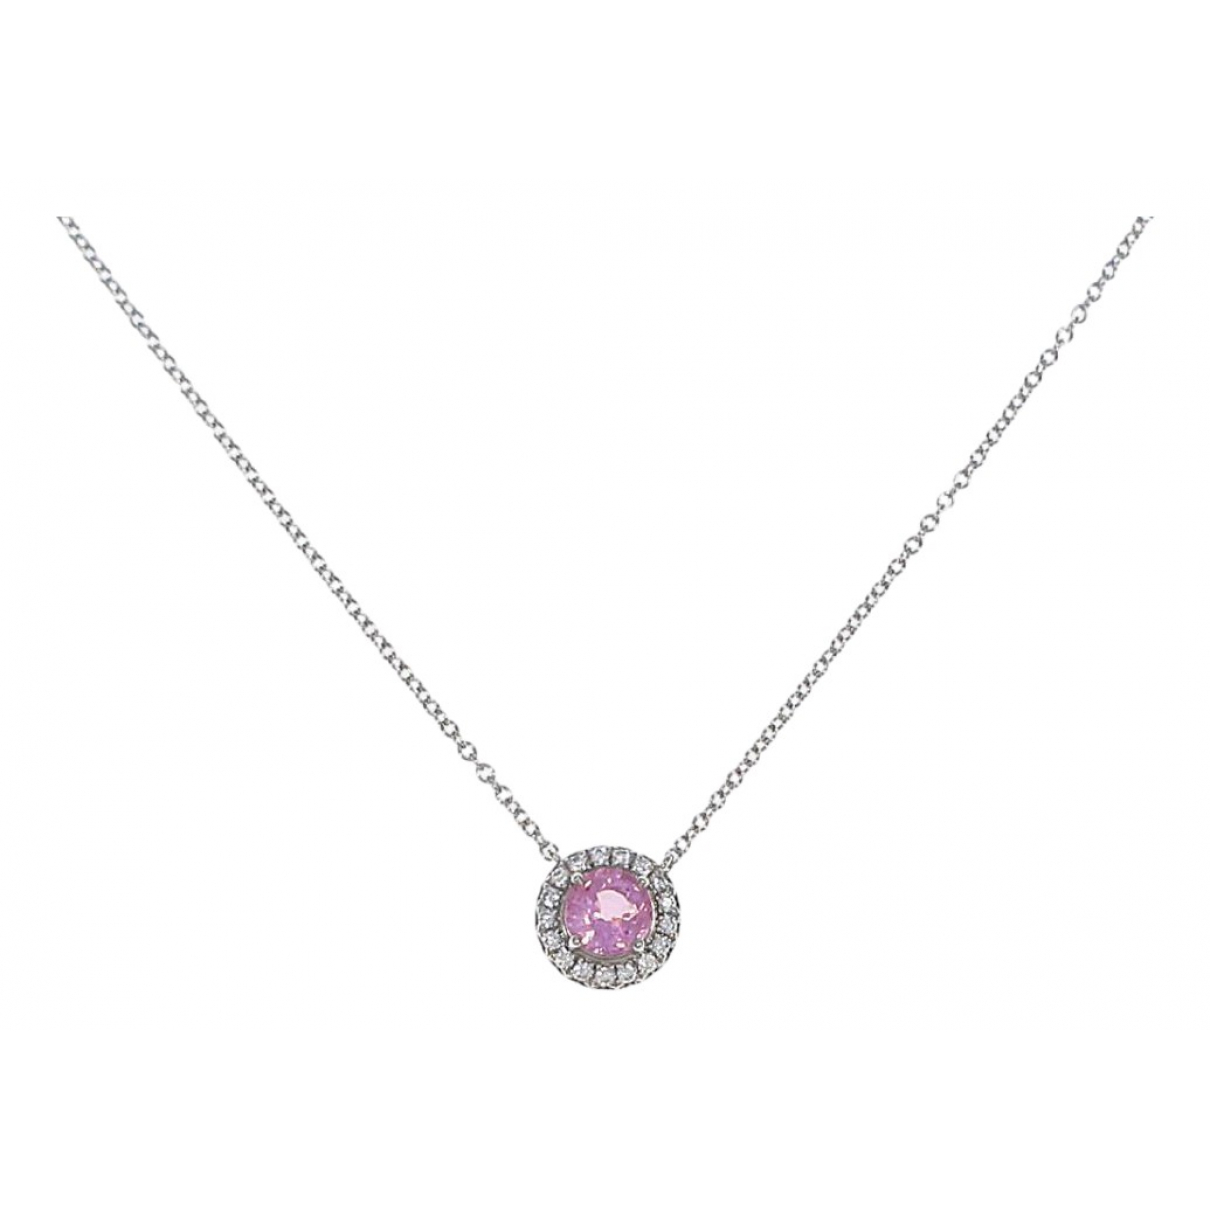 Tiffany & Co \N White gold necklace for Women \N